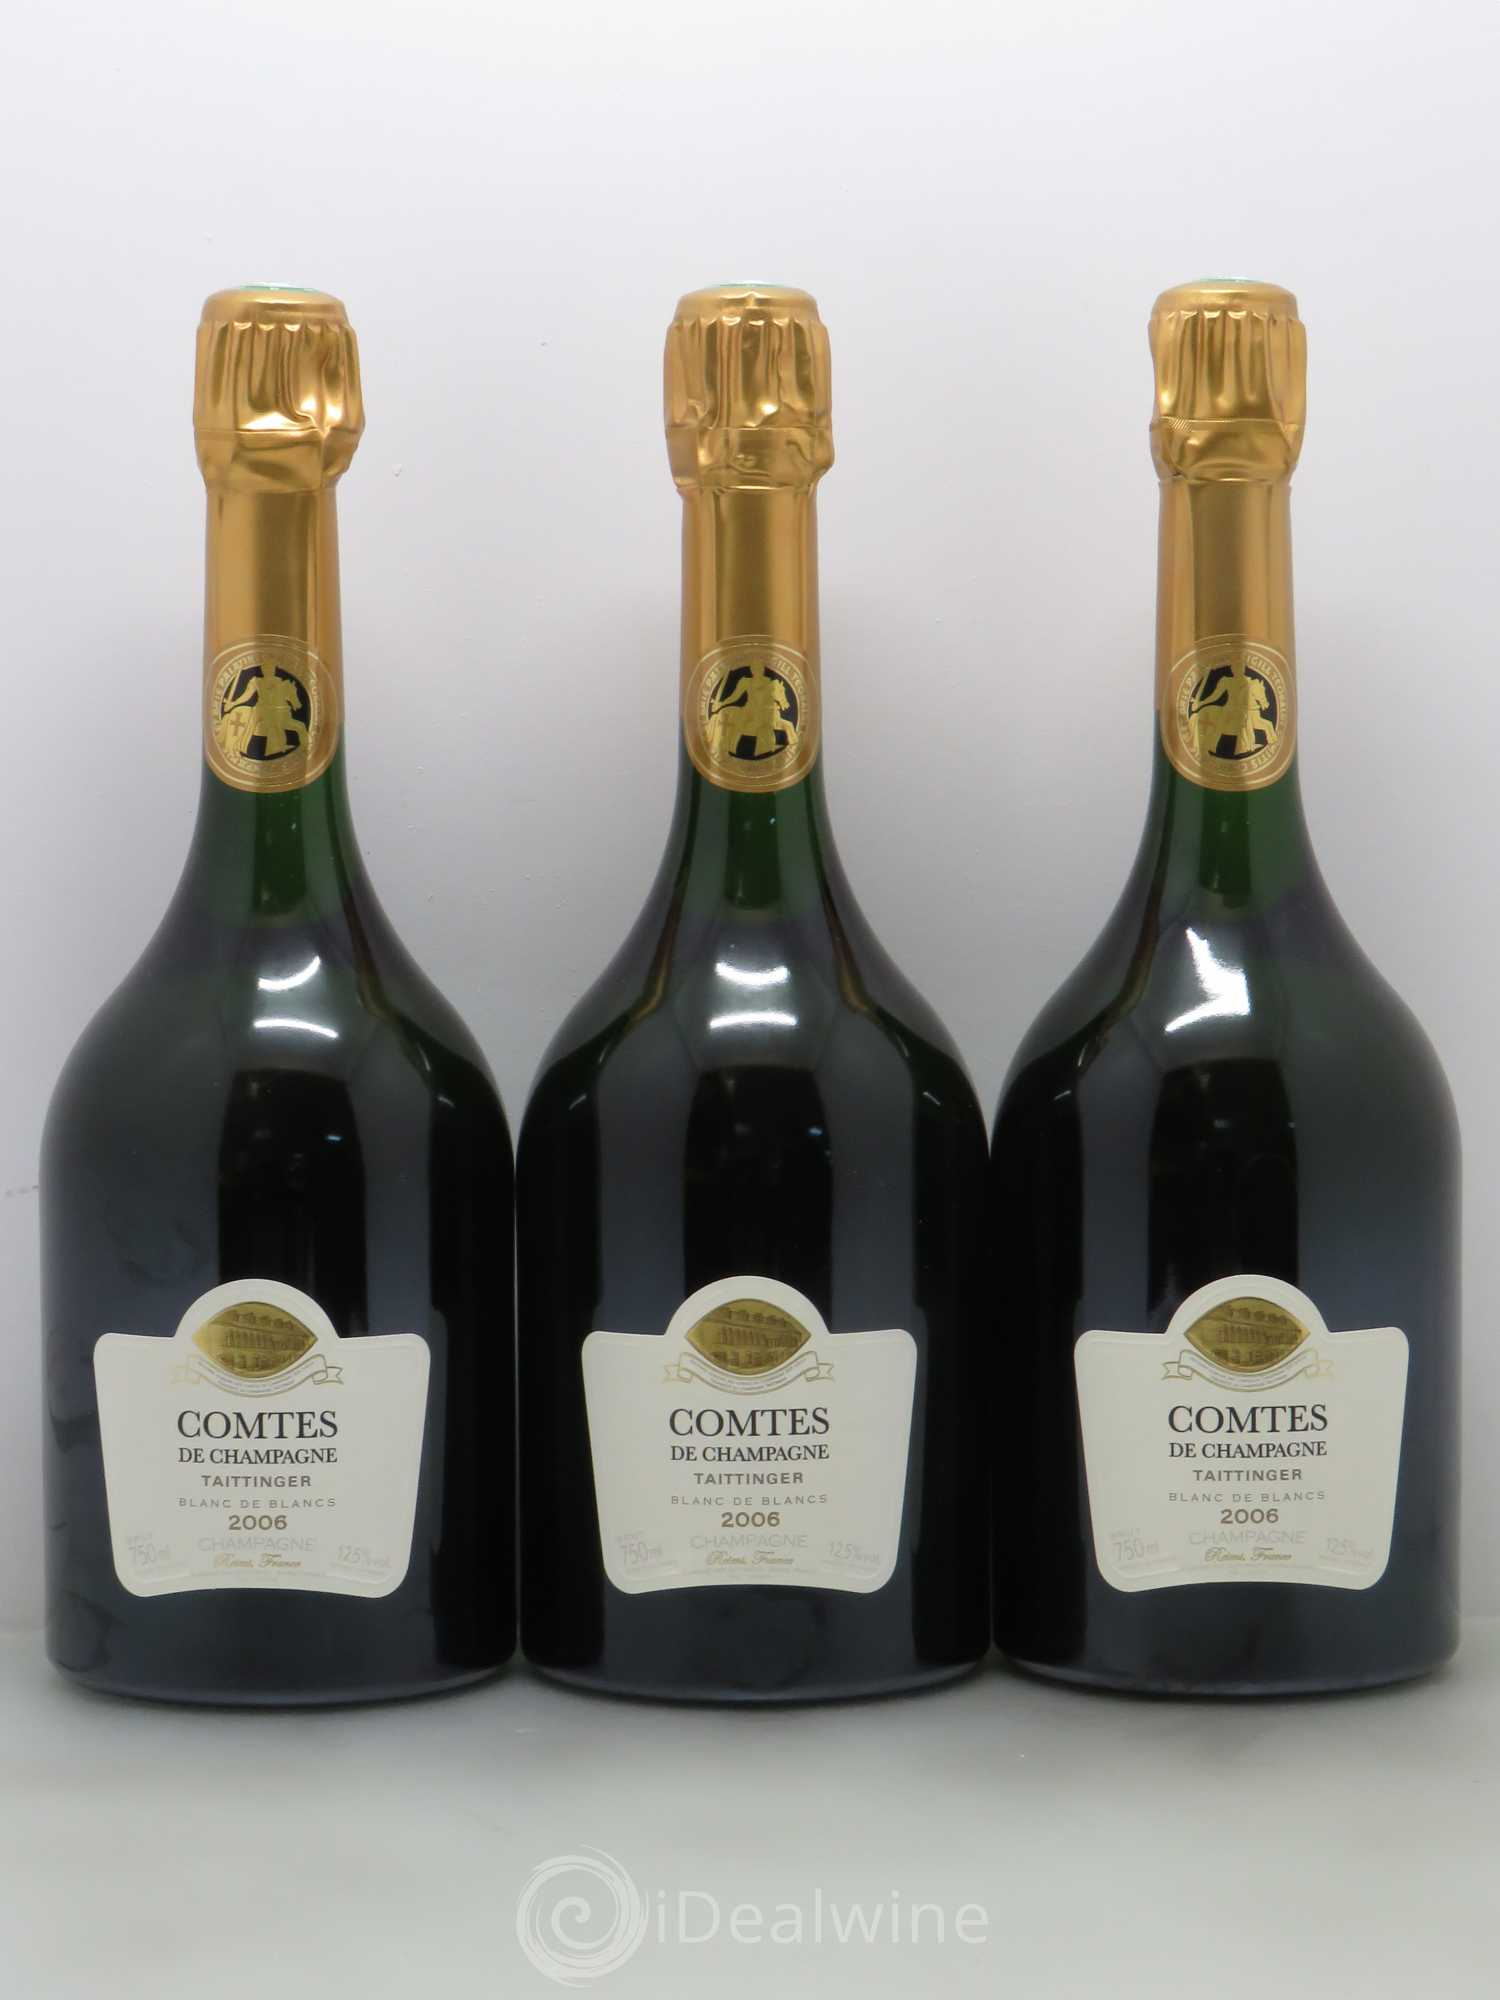 acheter comtes de champagne champagne taittinger 2006 lot 2070. Black Bedroom Furniture Sets. Home Design Ideas